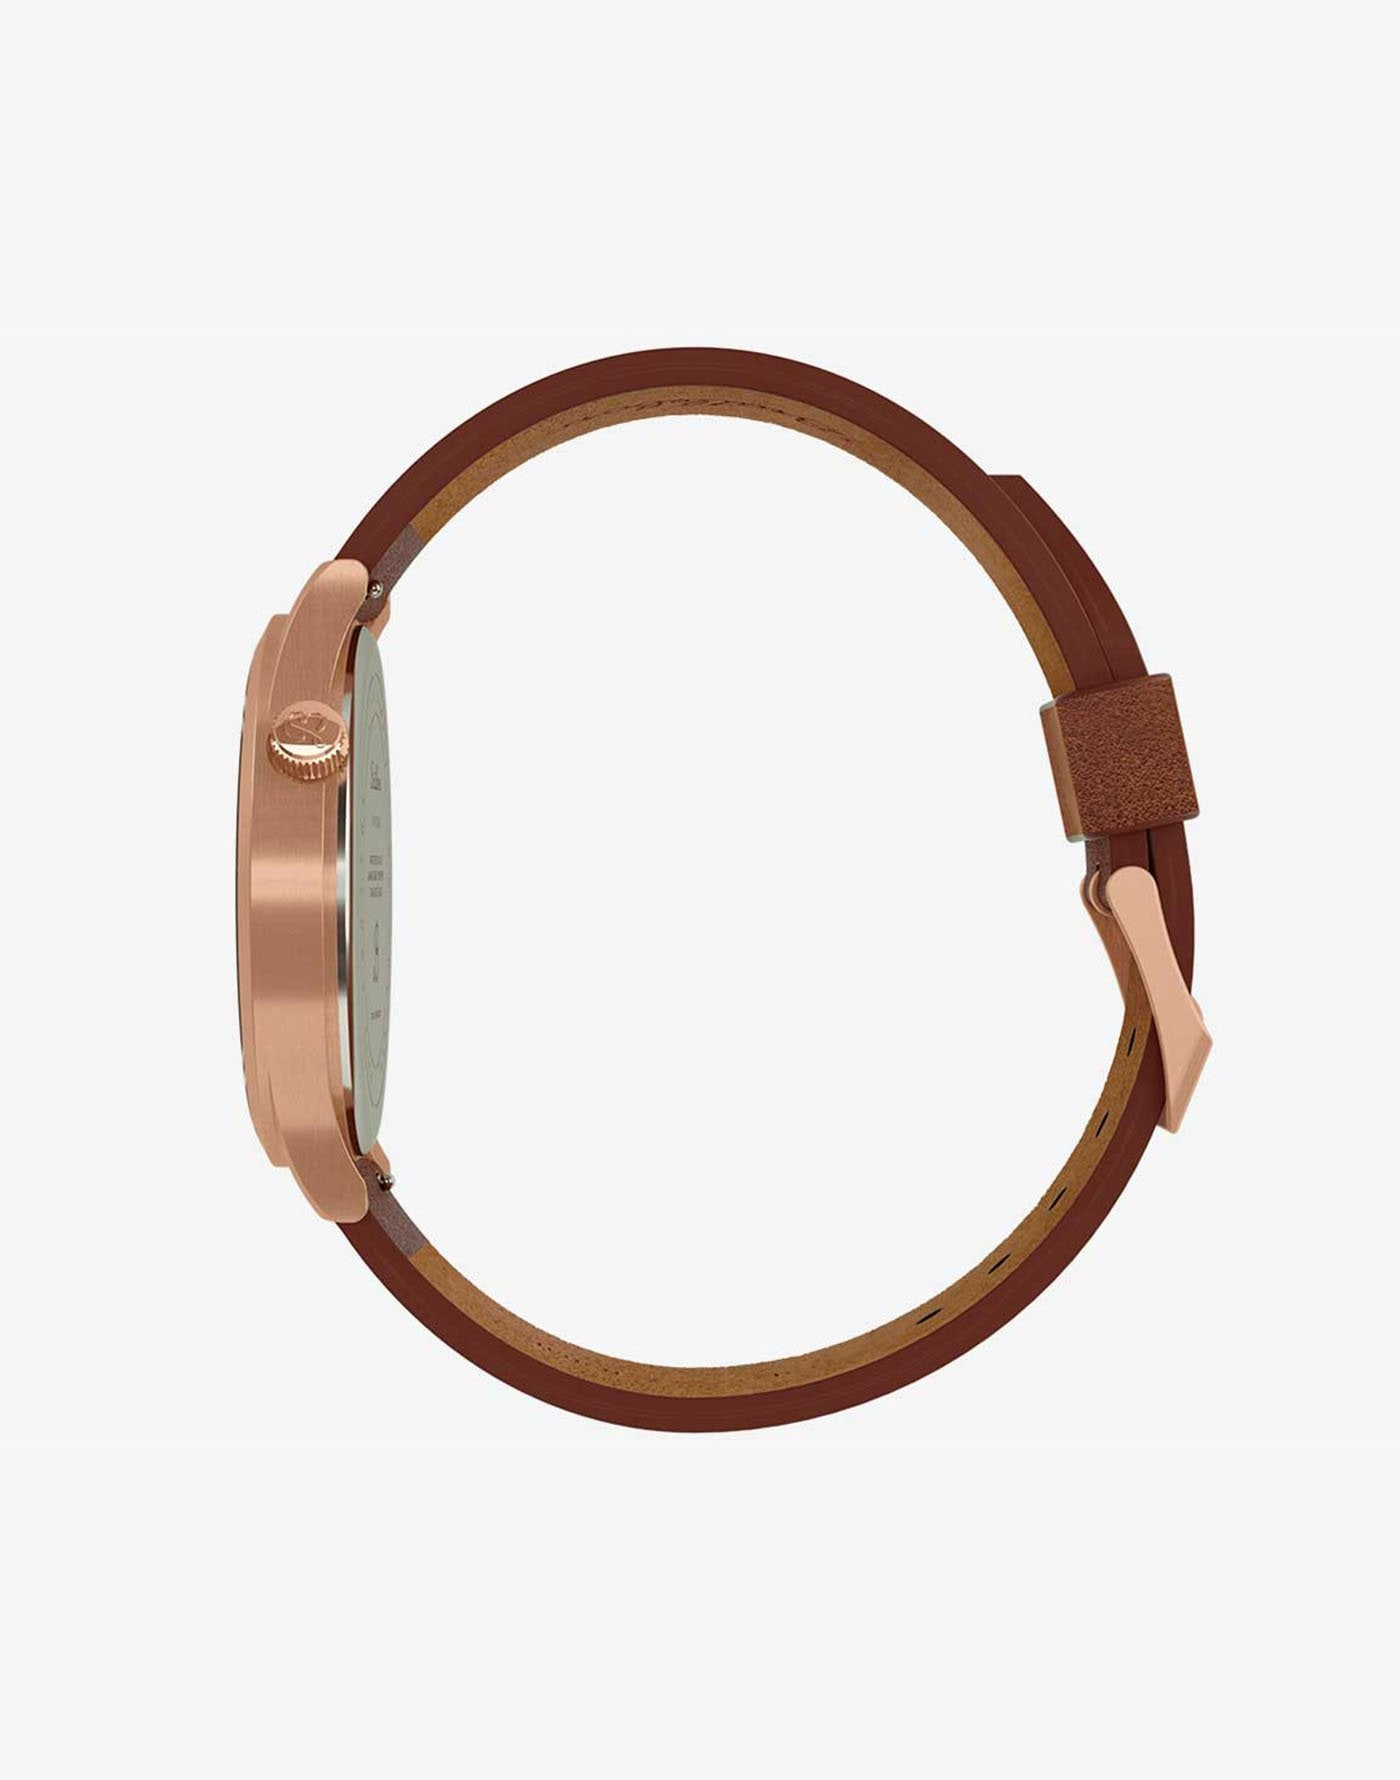 Ø 38mm · ROSE GOLD MIRRORED